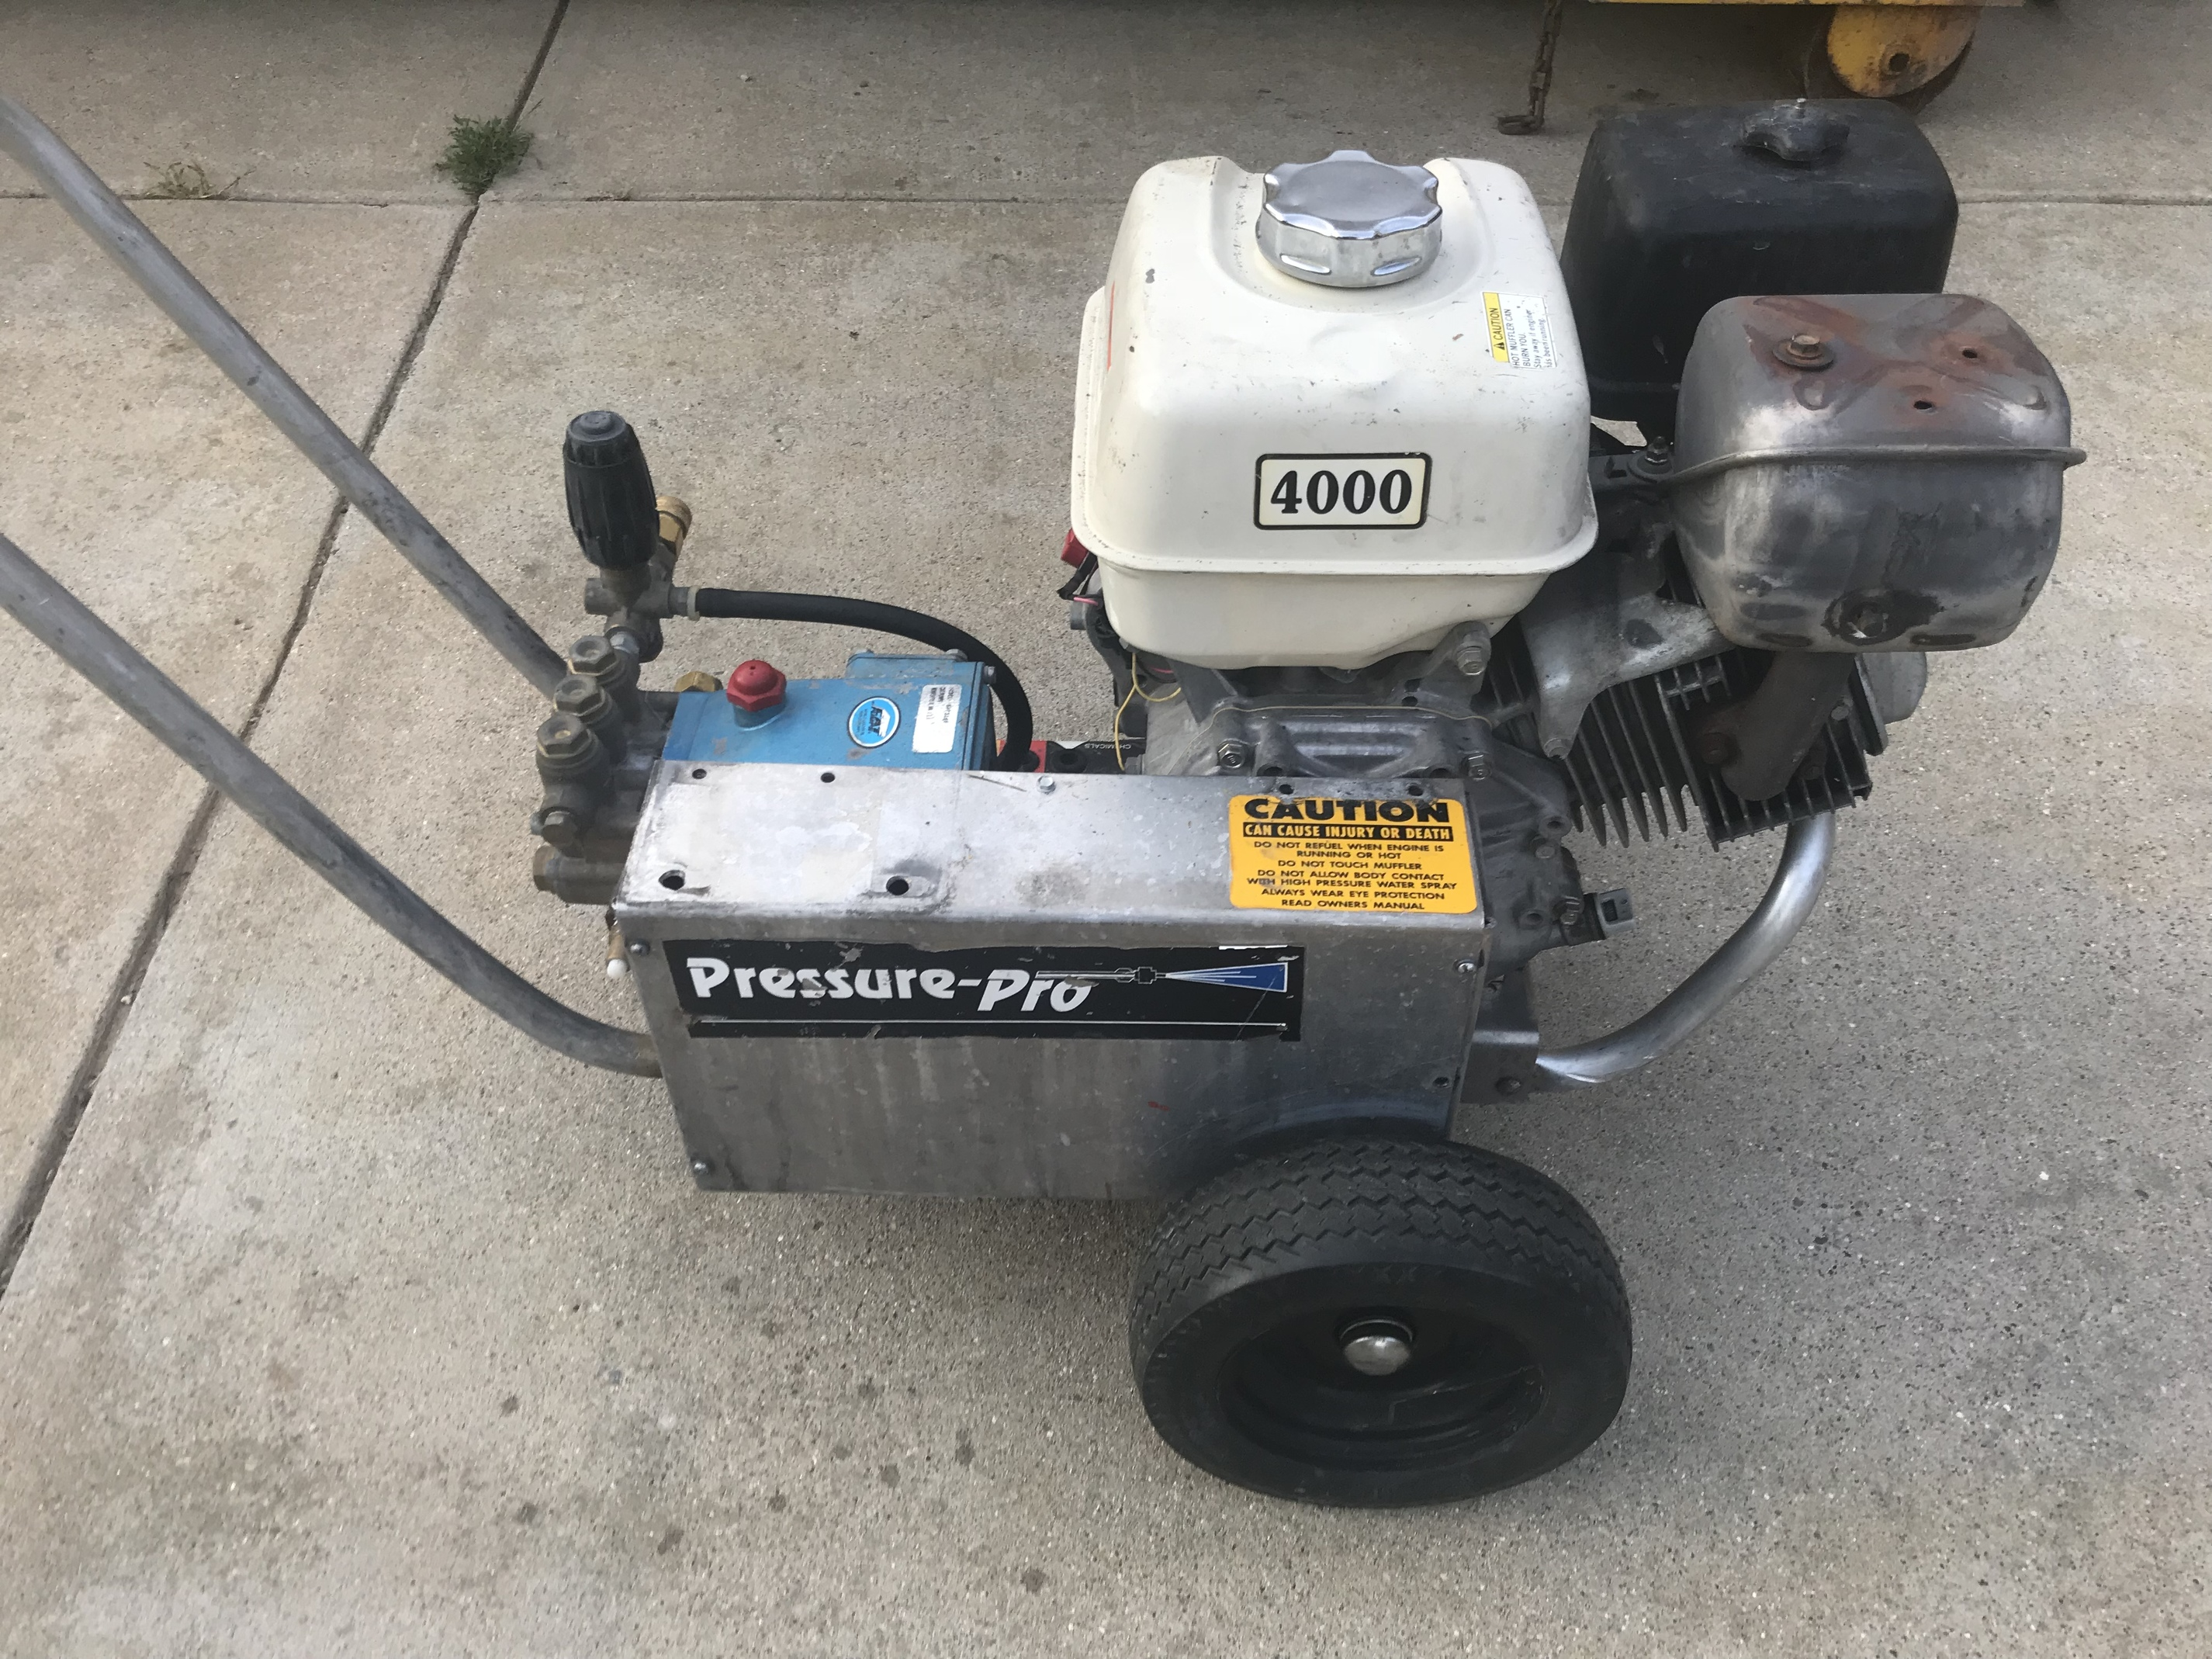 Advice on my first big boy pressure washer - Supplies